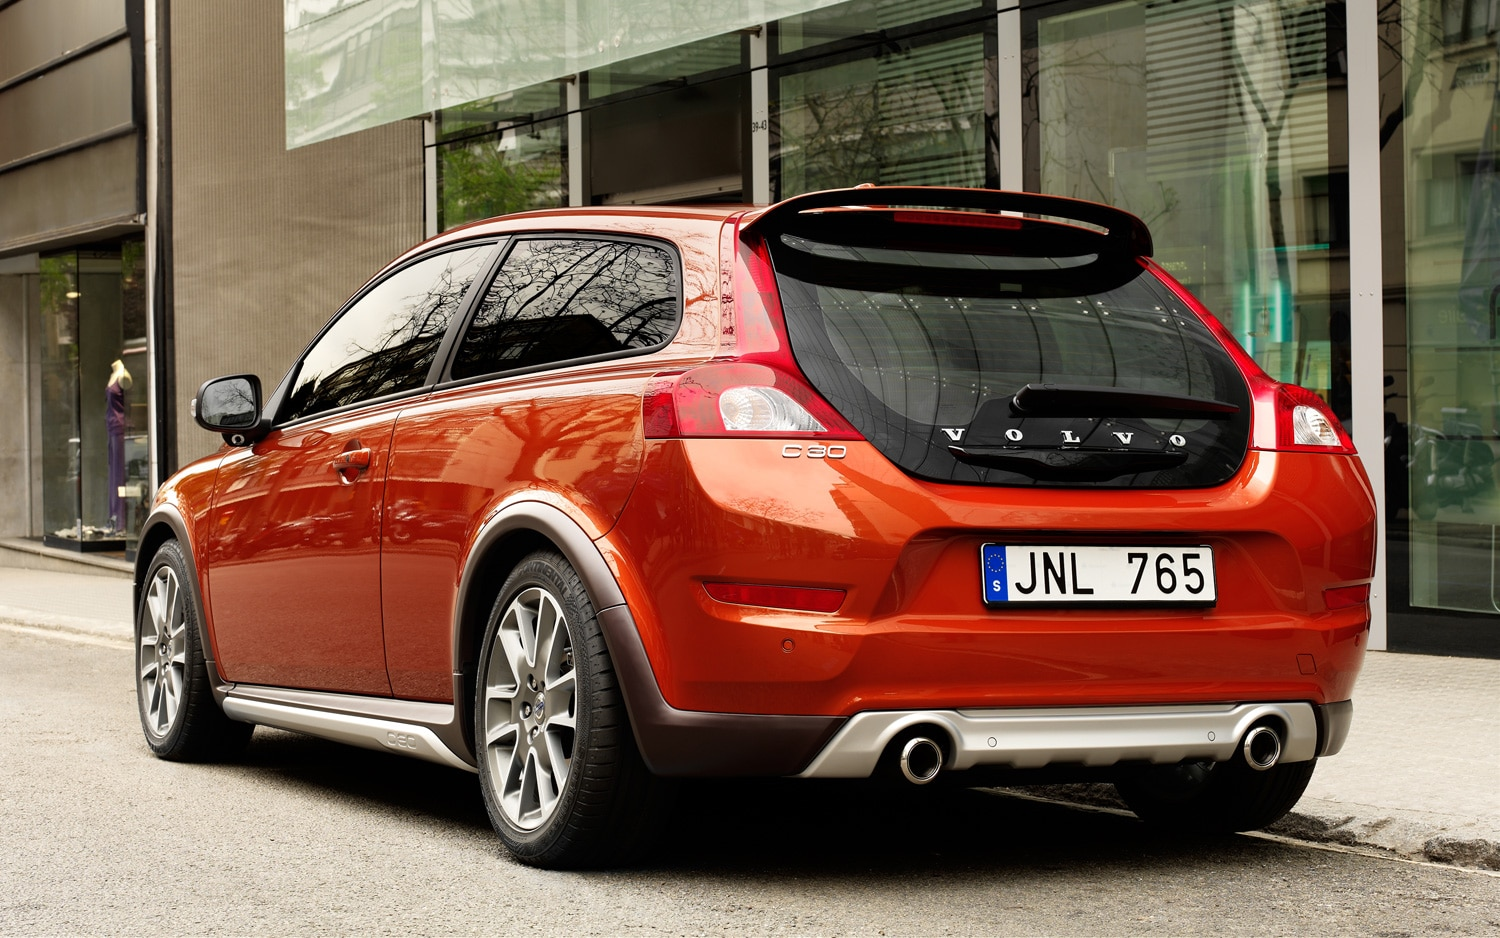 Official: Volvo Discontinuing C30 Hatchback After This Year